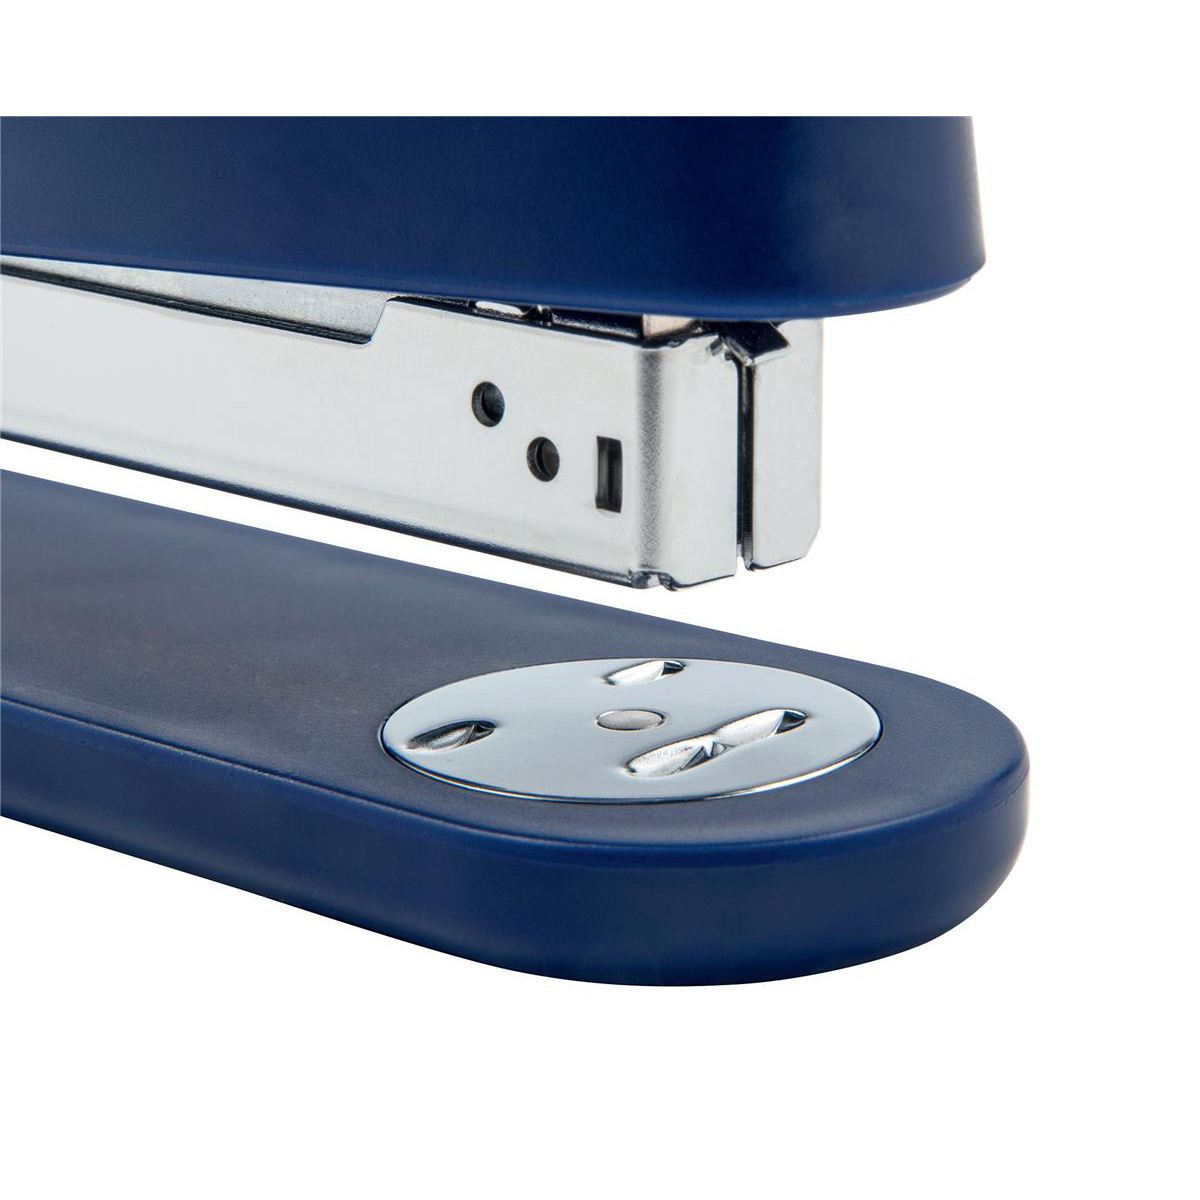 5 Star Office Stapler Full Strip Rubber Body Capacity 25 Sheets Blue